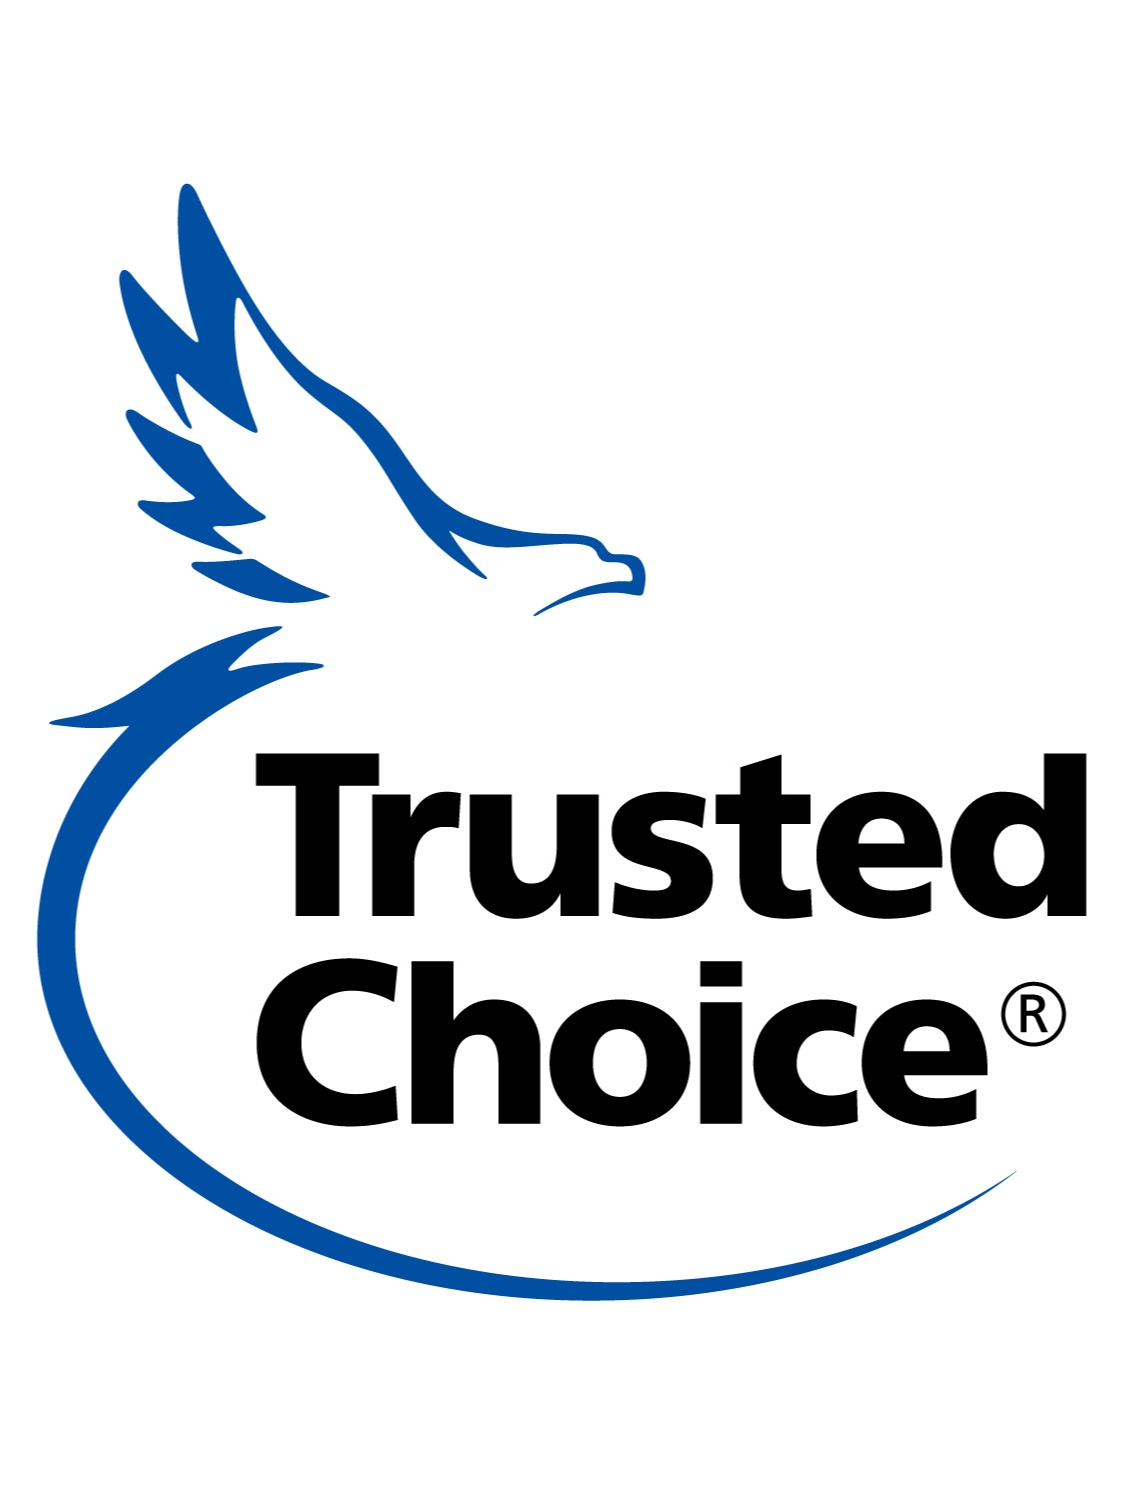 trusted+choice.jpg